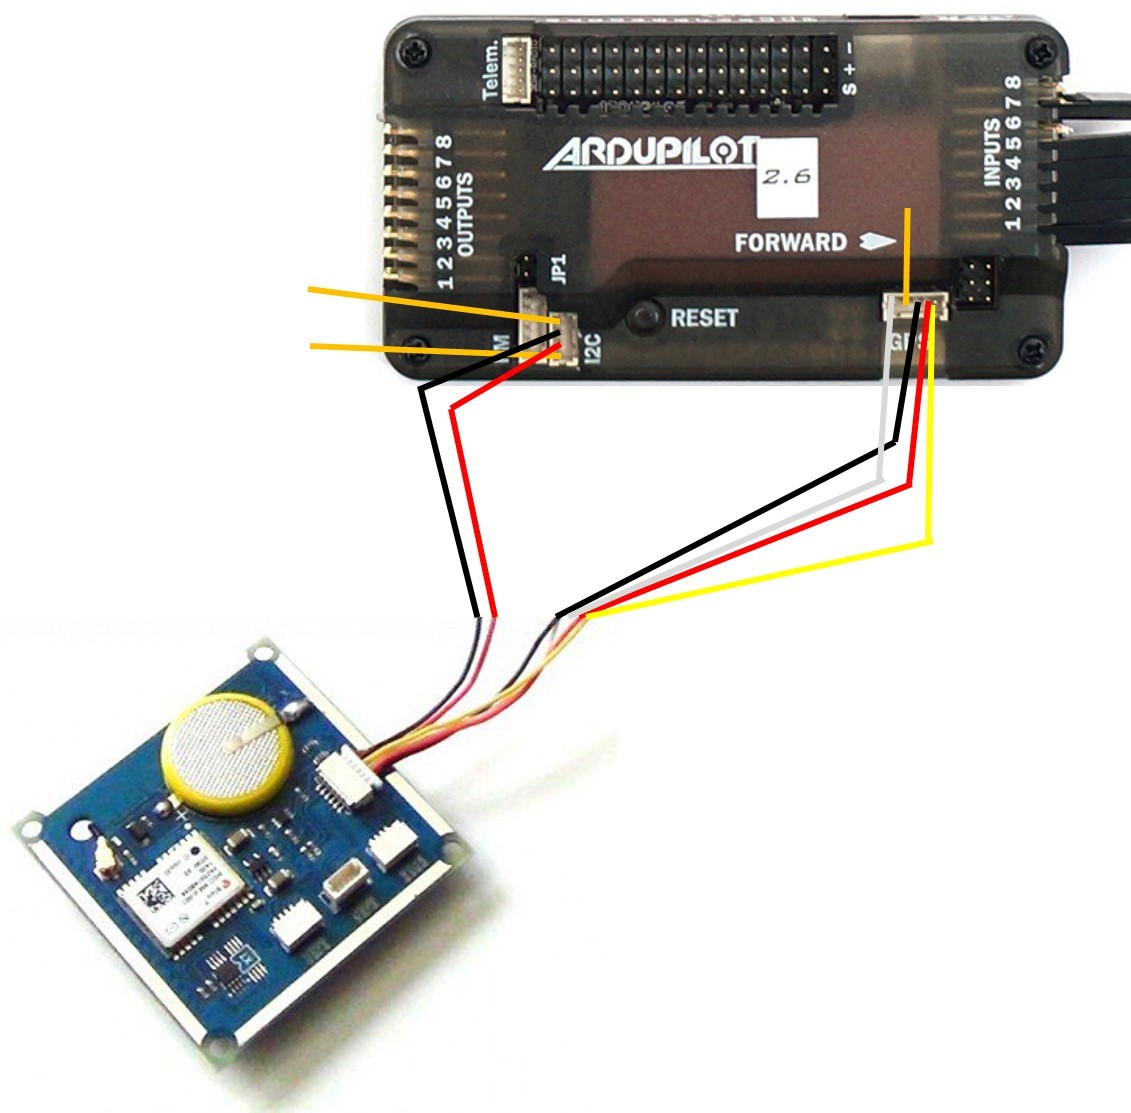 hight resolution of remember when connecting the gps module the rx from the gps module goes to the tx of the apm similarly tx from gps goes to rx on apm